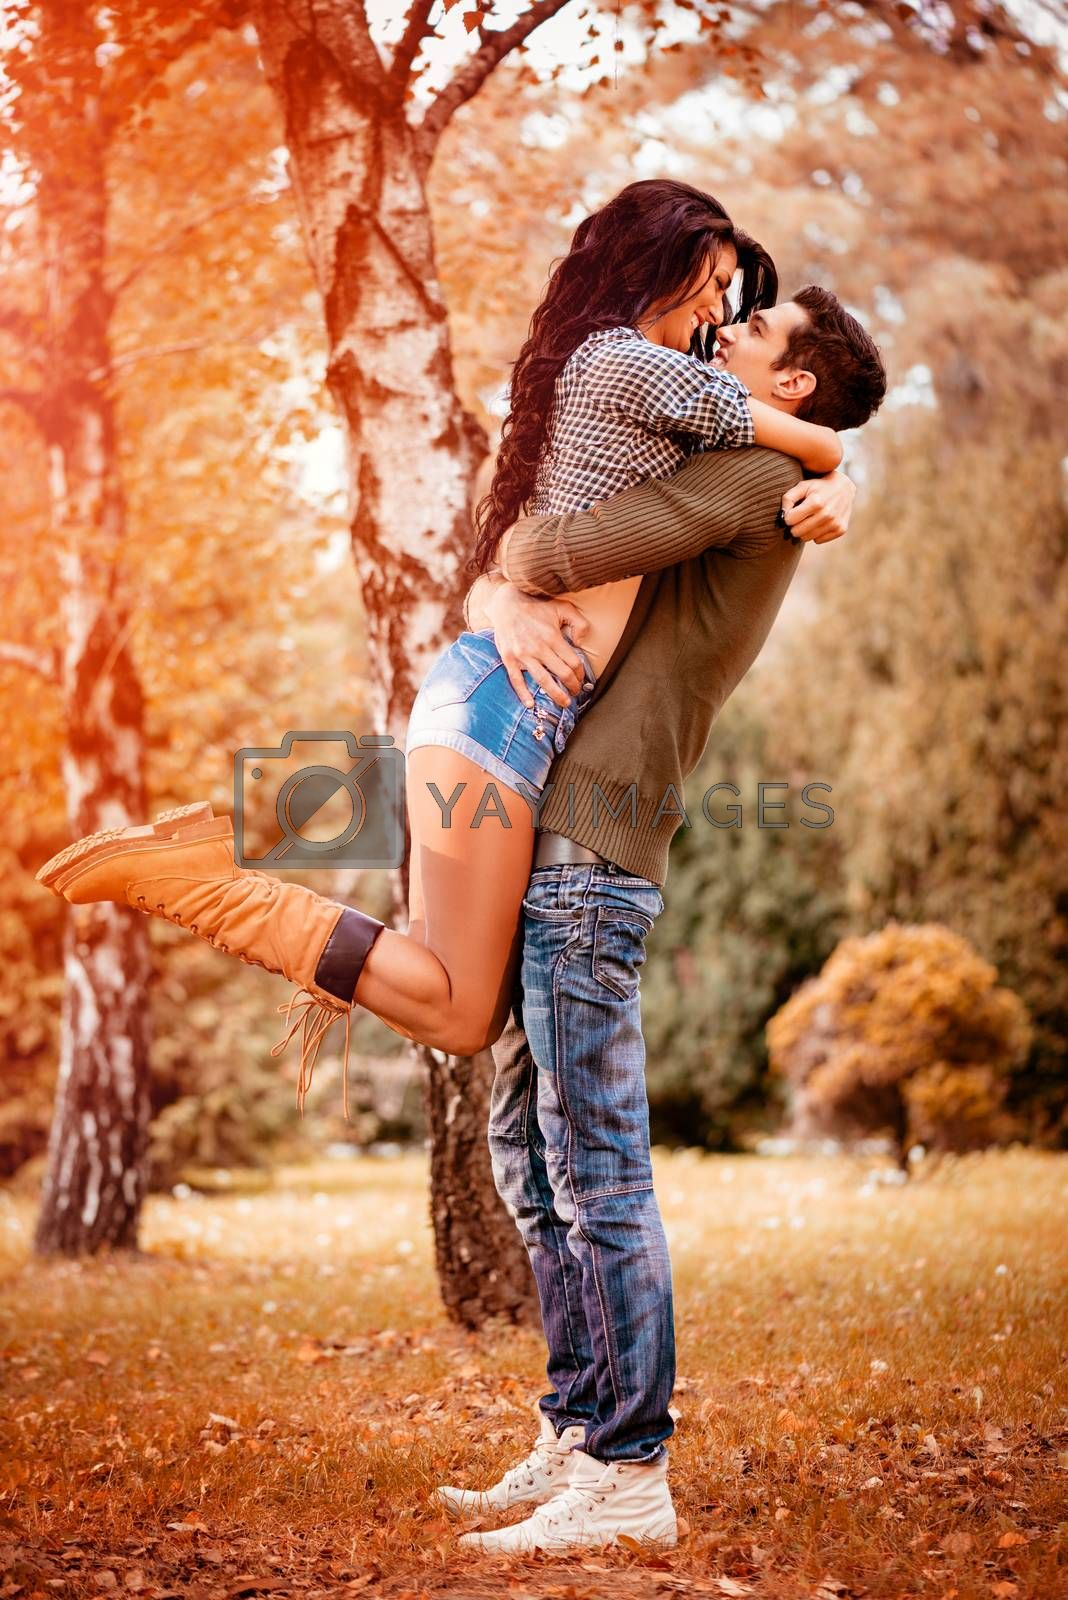 Beautiful lovely couple enjoying in sunny park in autumn colors. Guy holding girlfriend in height in a passionate embrace.